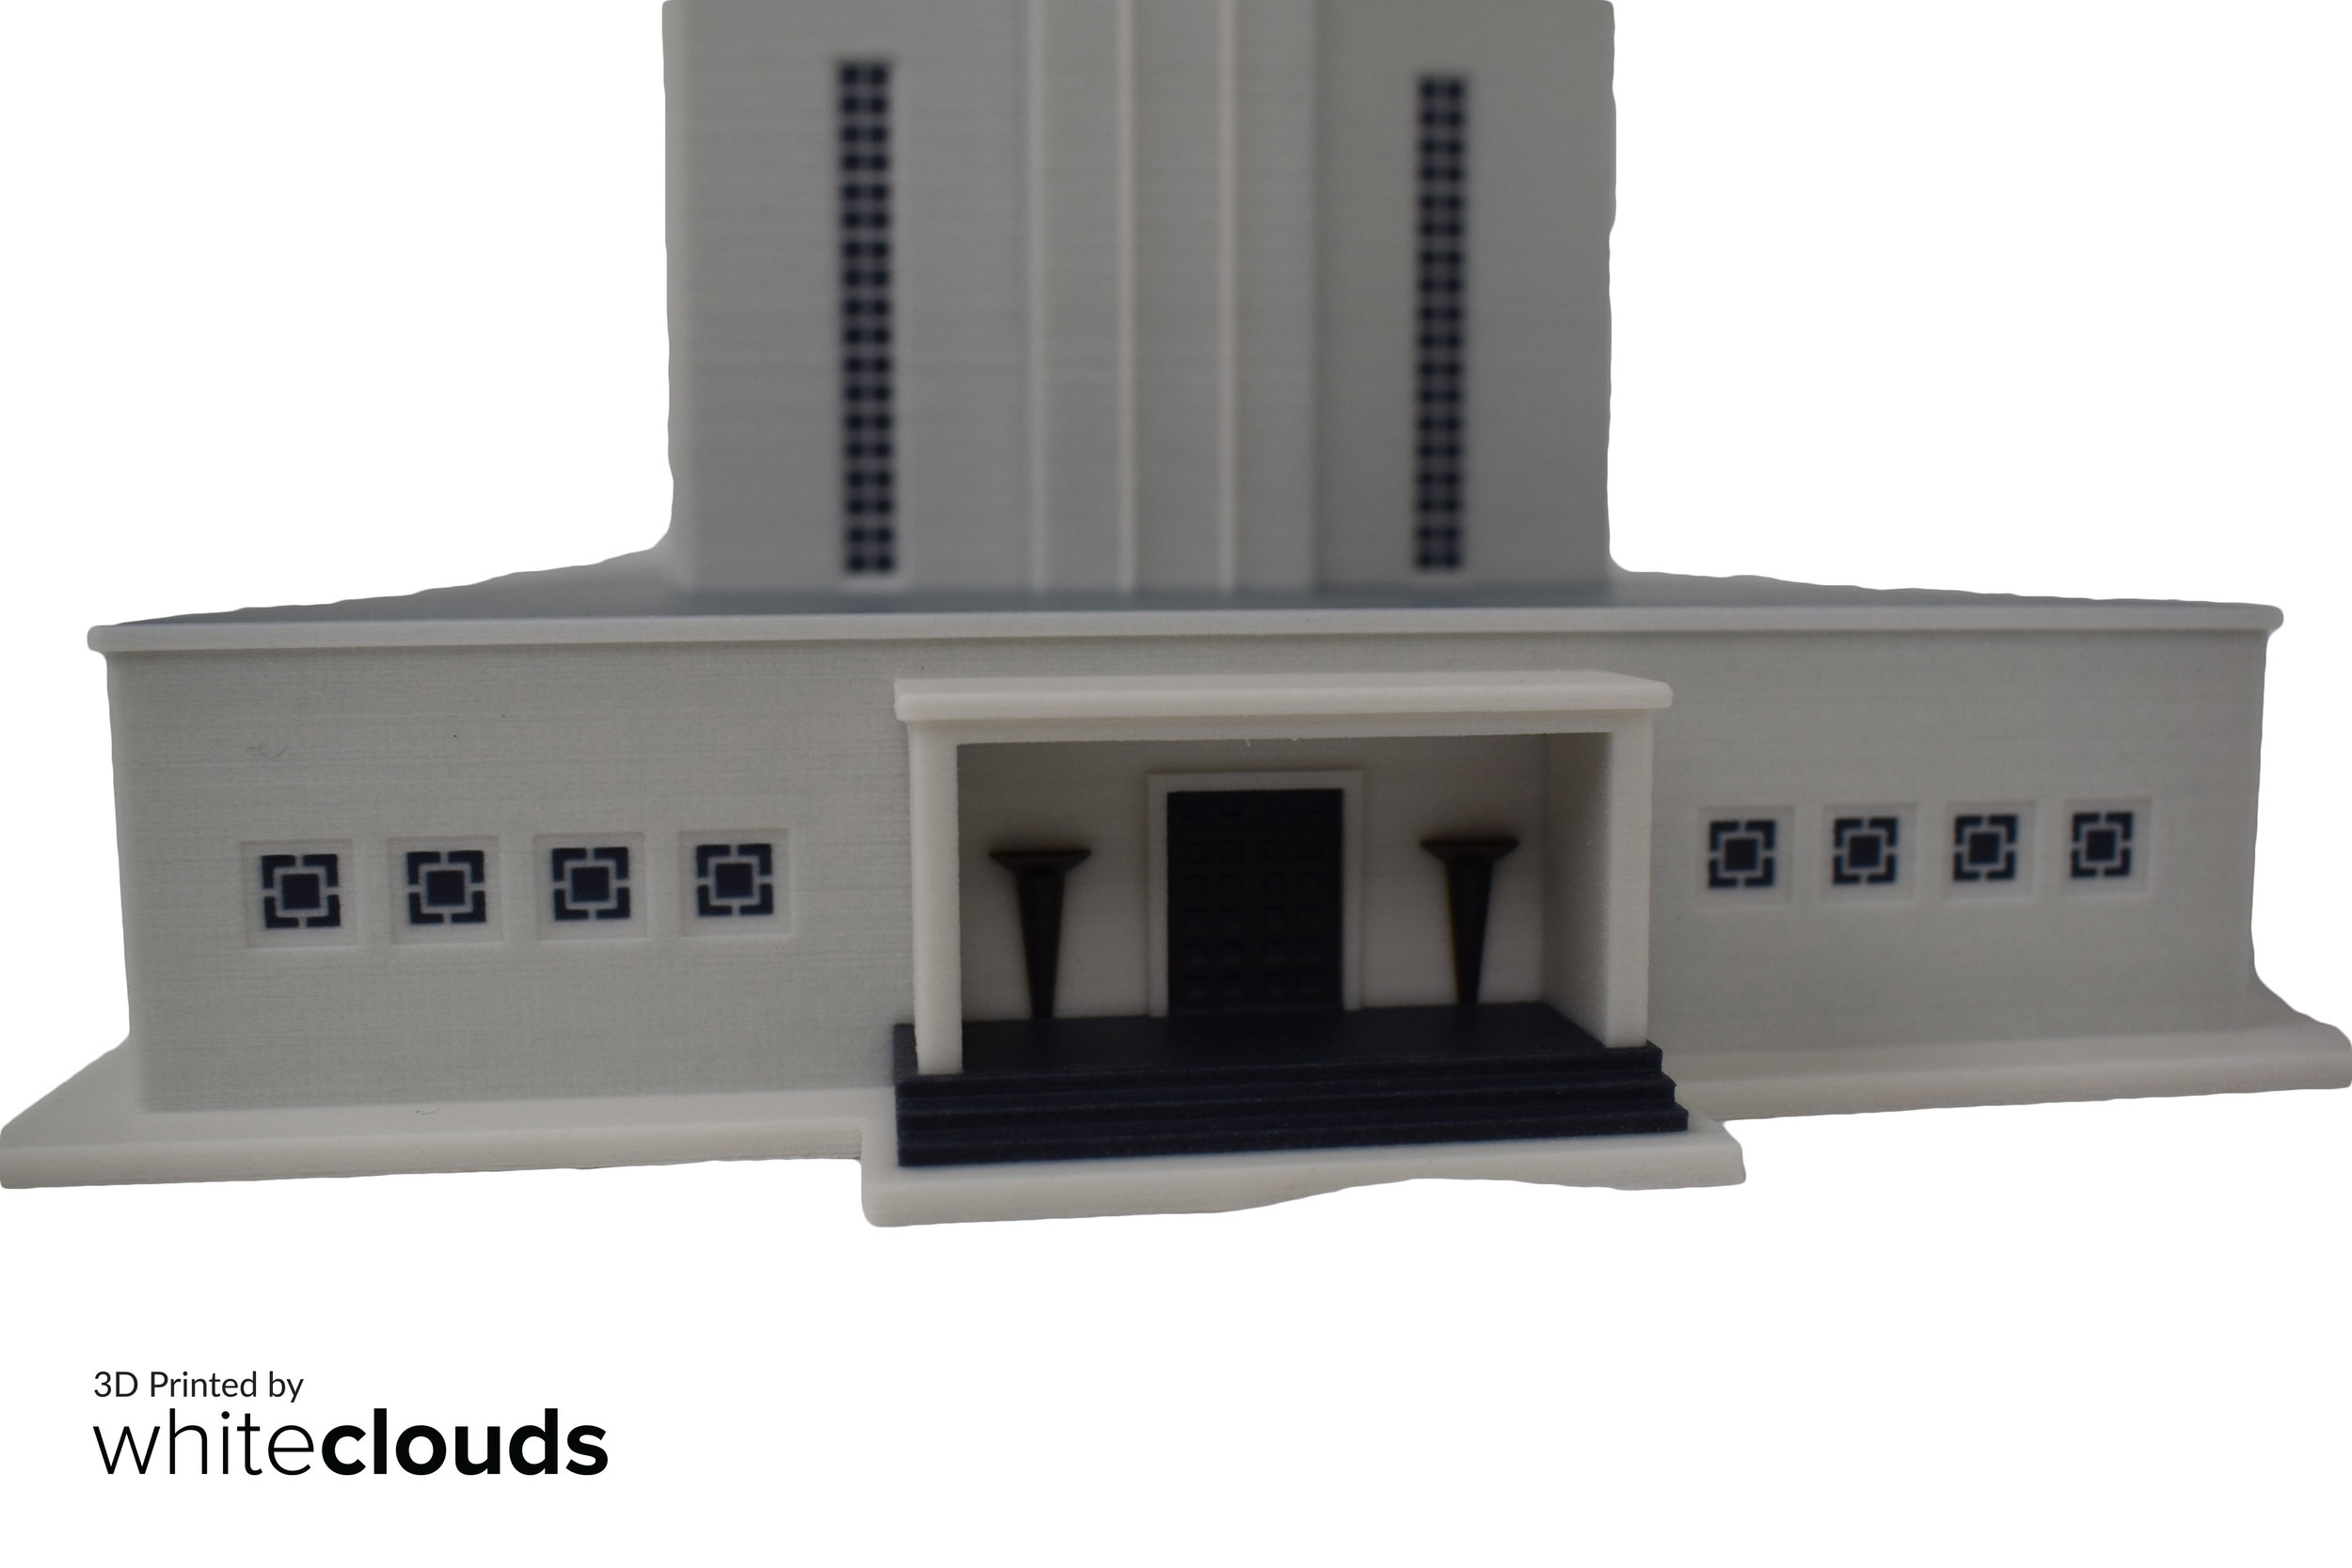 3D-Printed-WhiteClouds-Temple-Architecture-LDS-Bern-Switzerland-Temple-Website-4.JPG